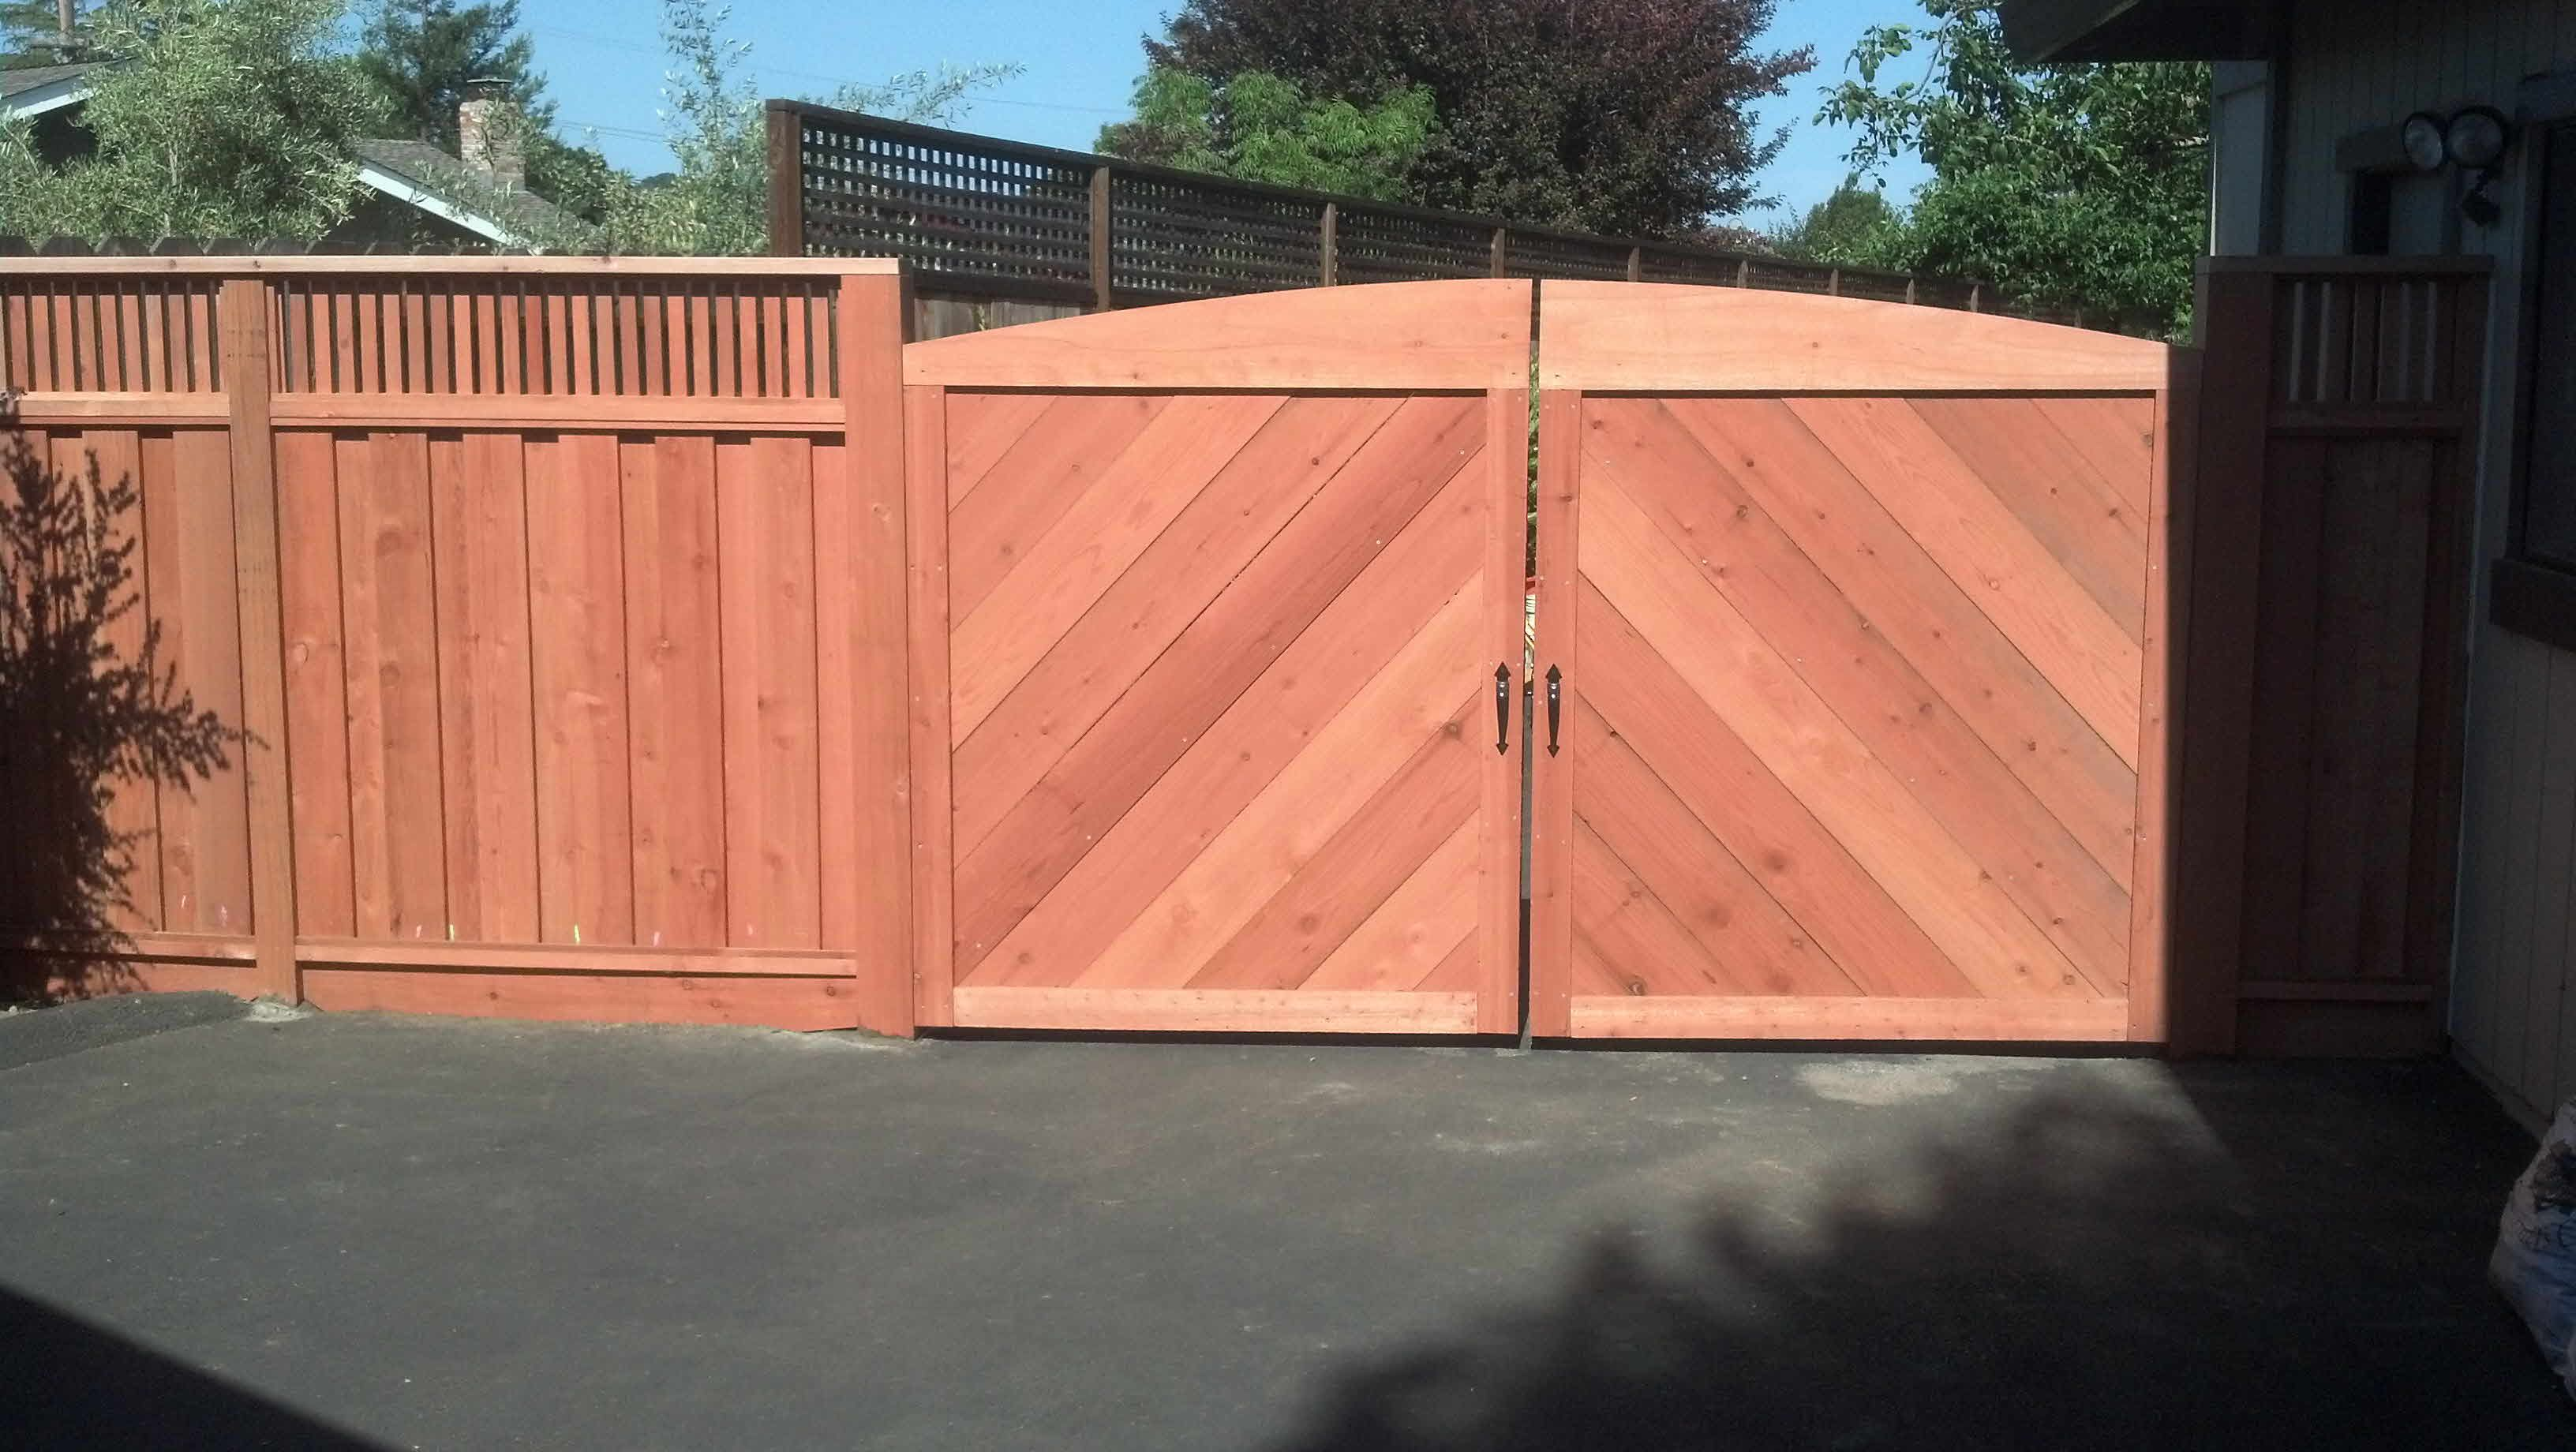 Redwood Fencing Board On Board With Vertical Top Lattice Fence